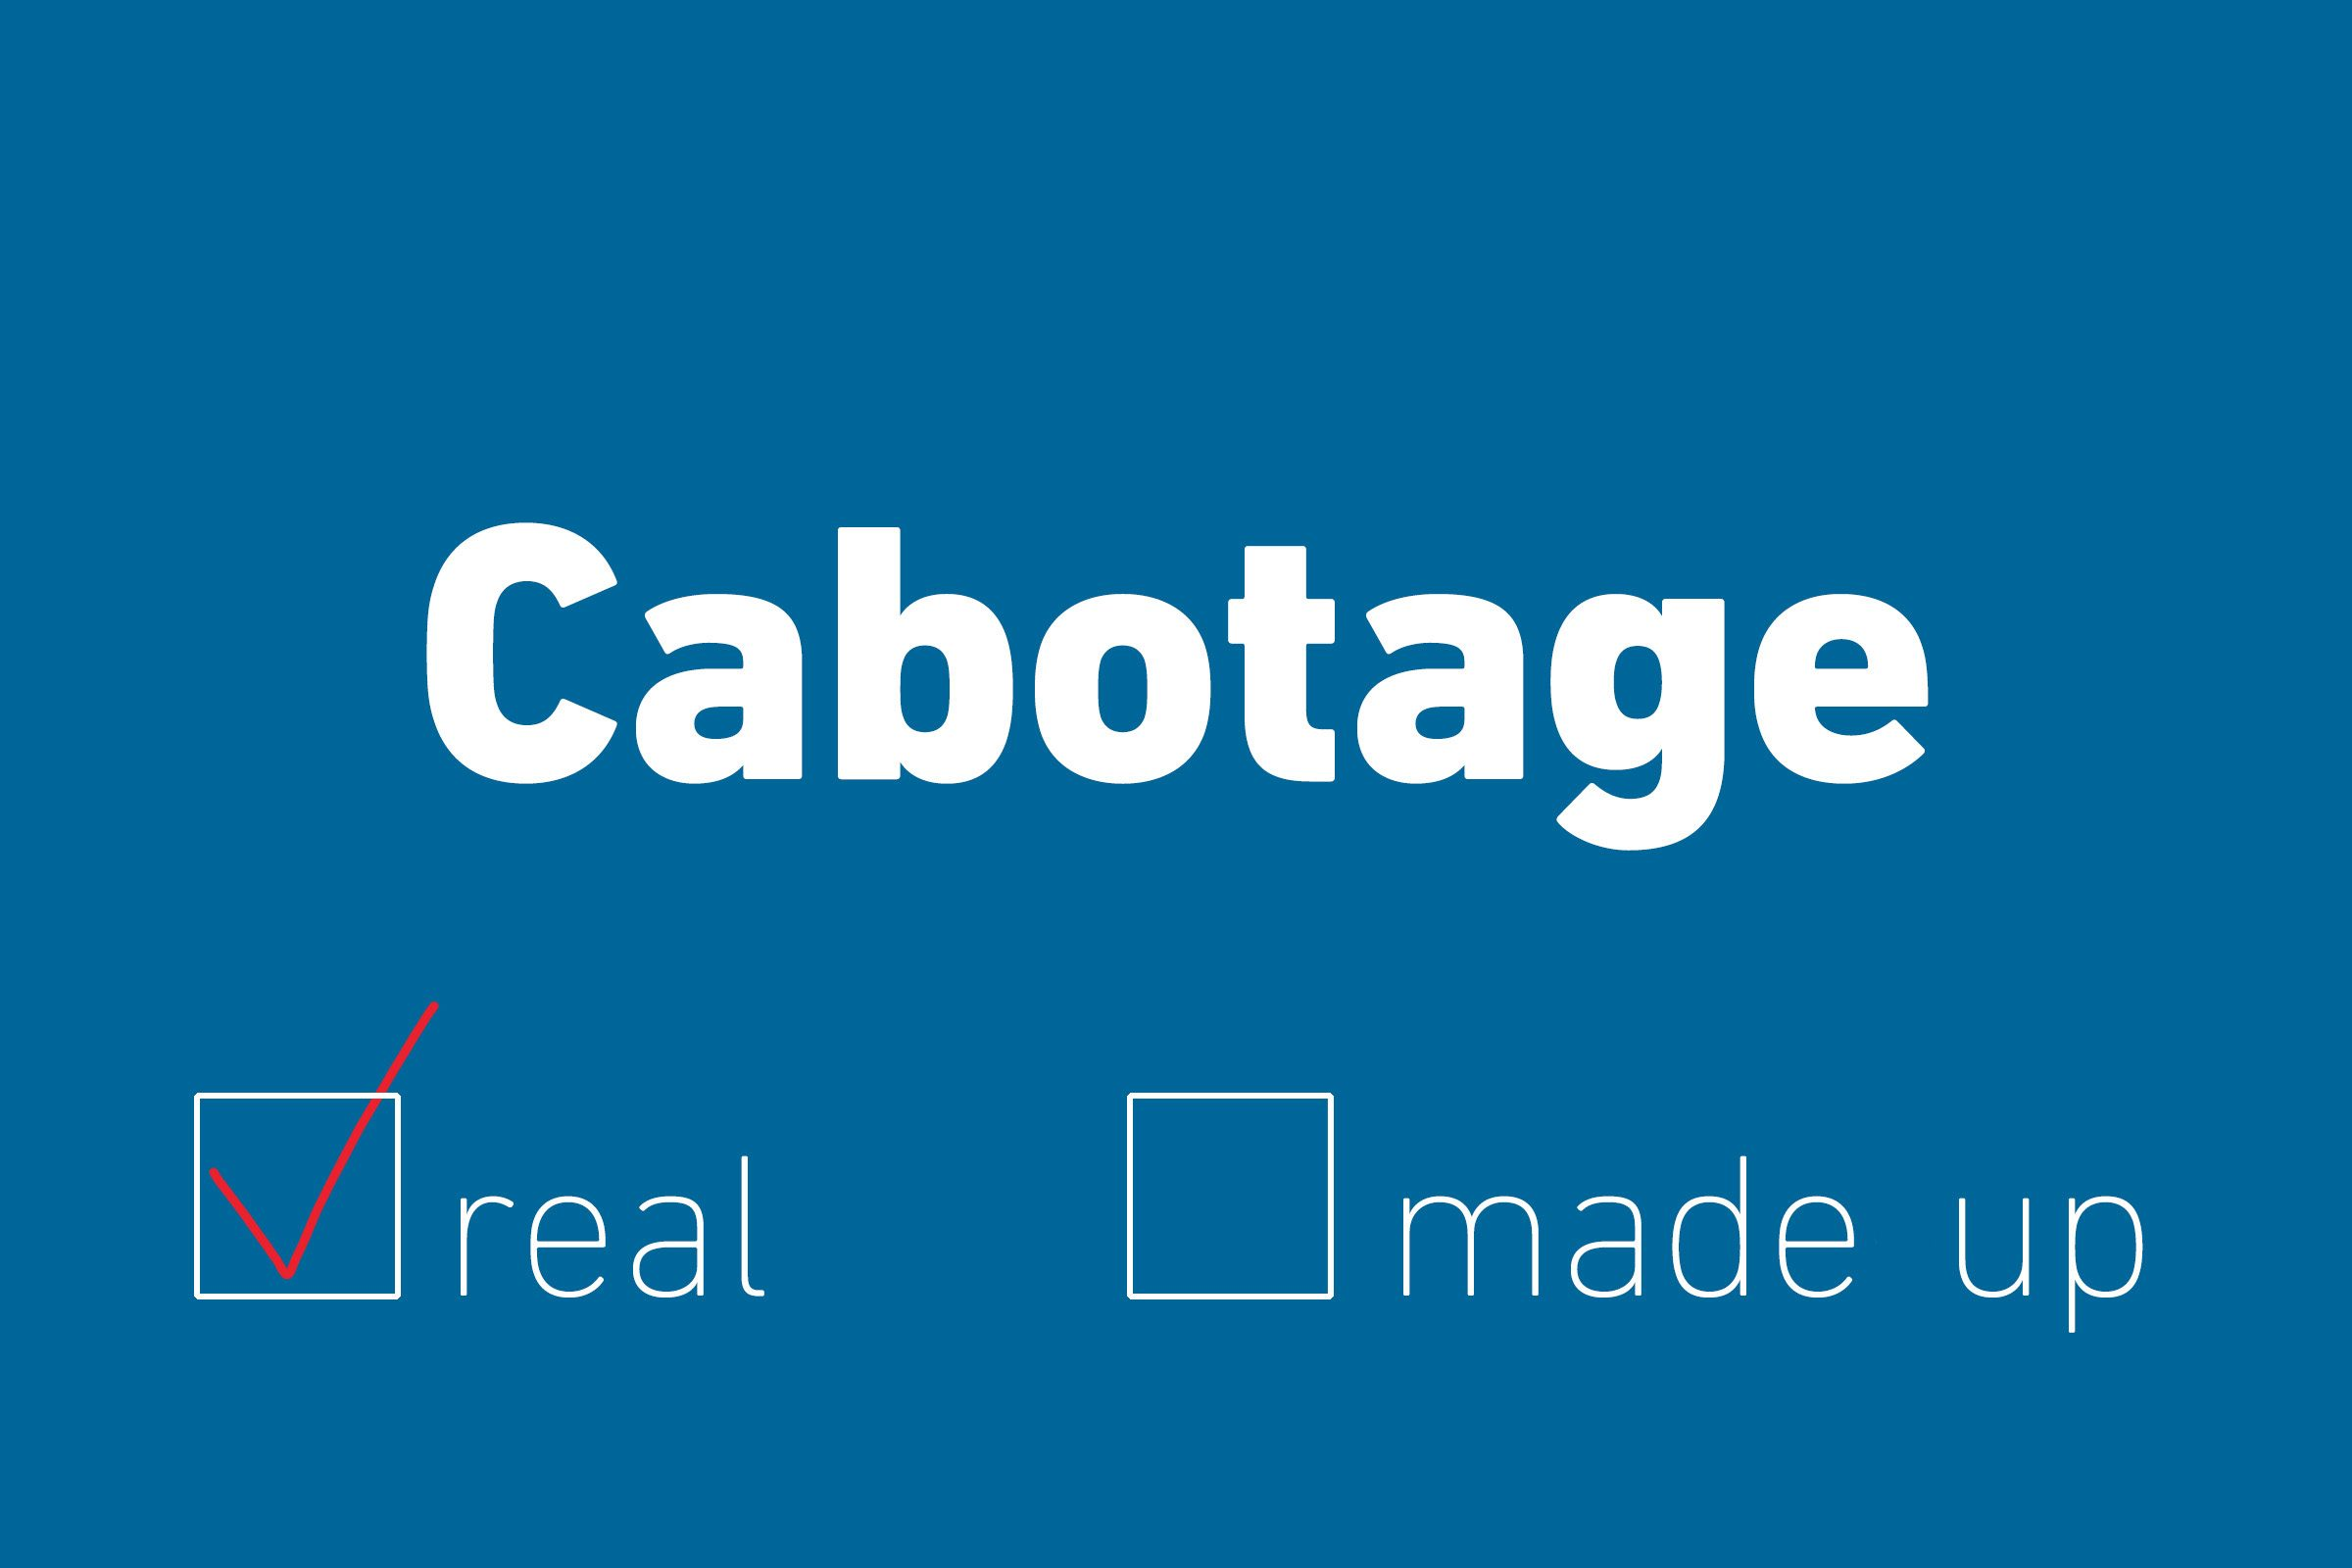 cabotage real